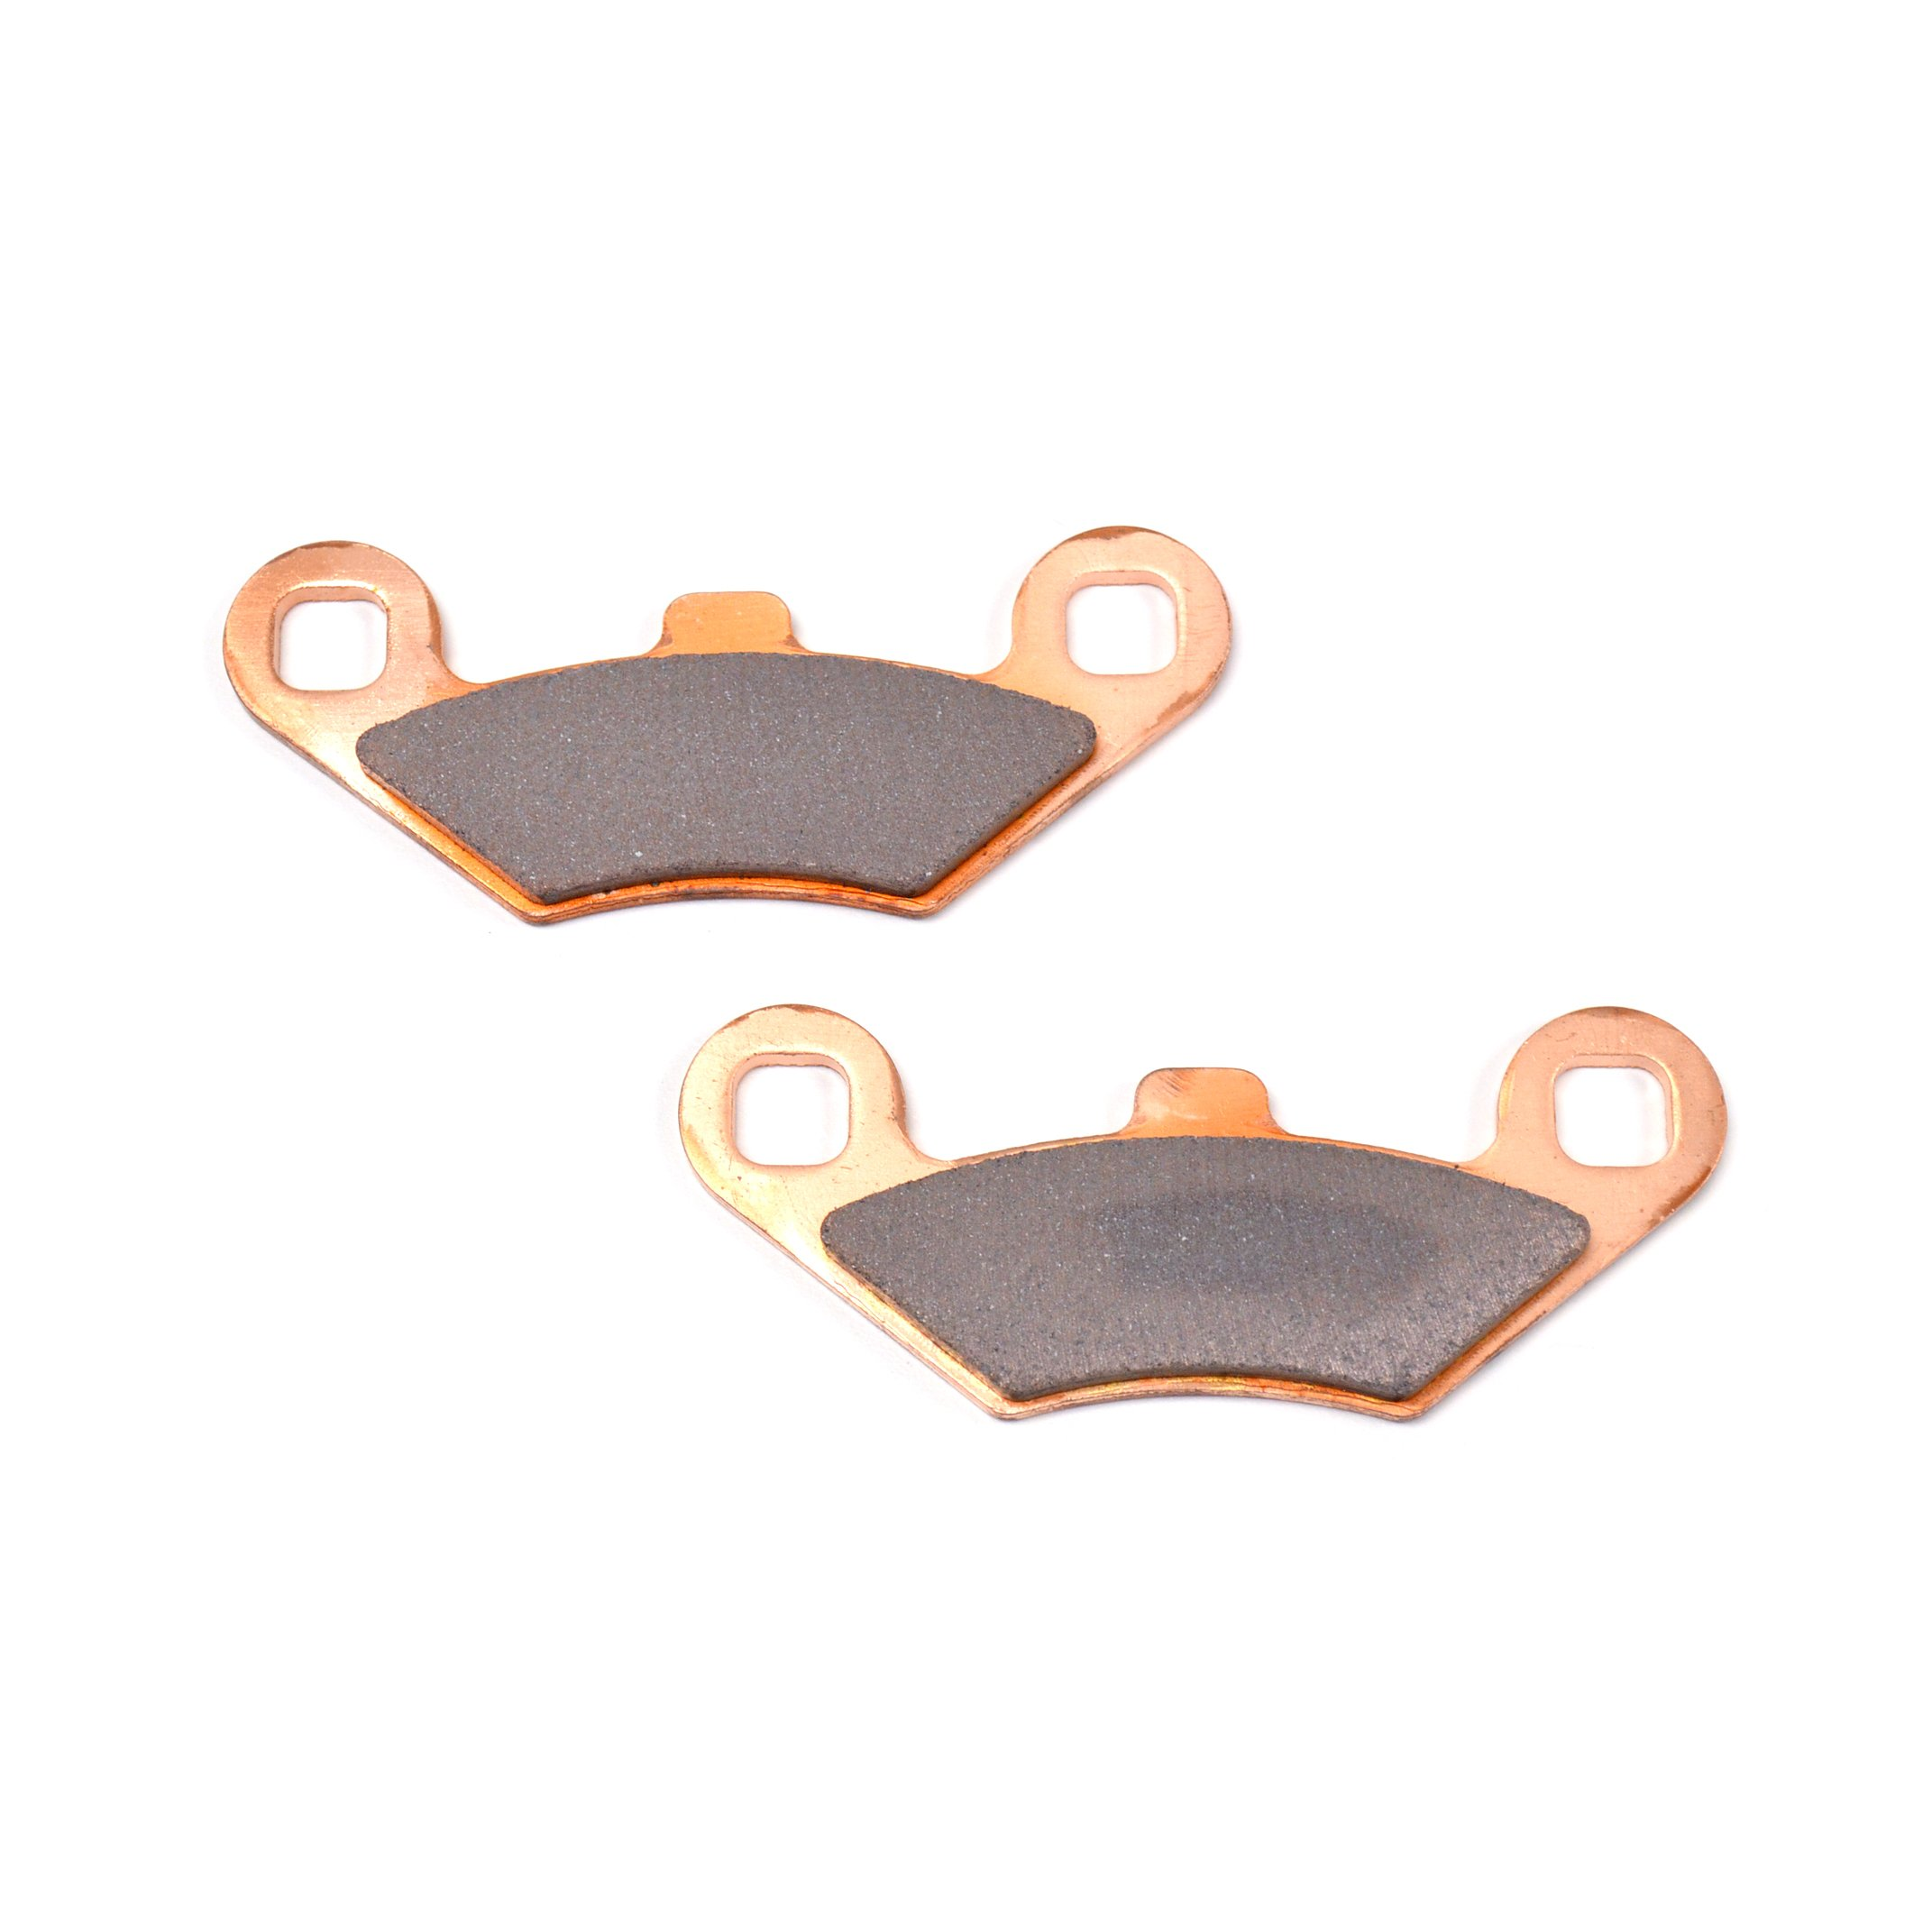 Polaris Sport 400 L 94-98 Front Performance Brake Pads by Niche Cycle Supply